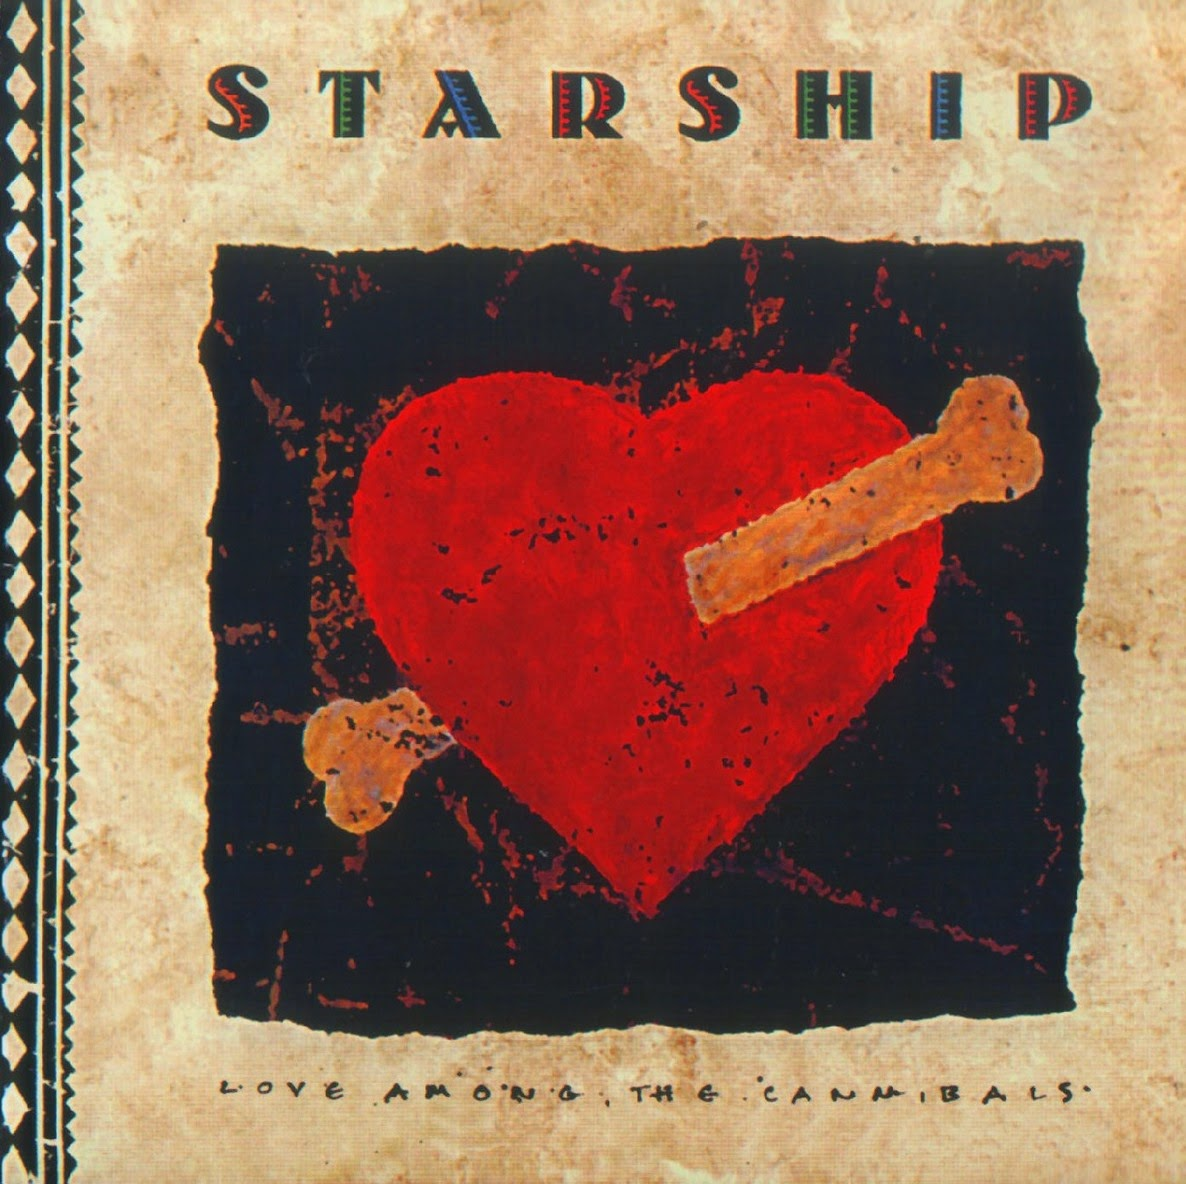 Starship Love among the cannibals 1989